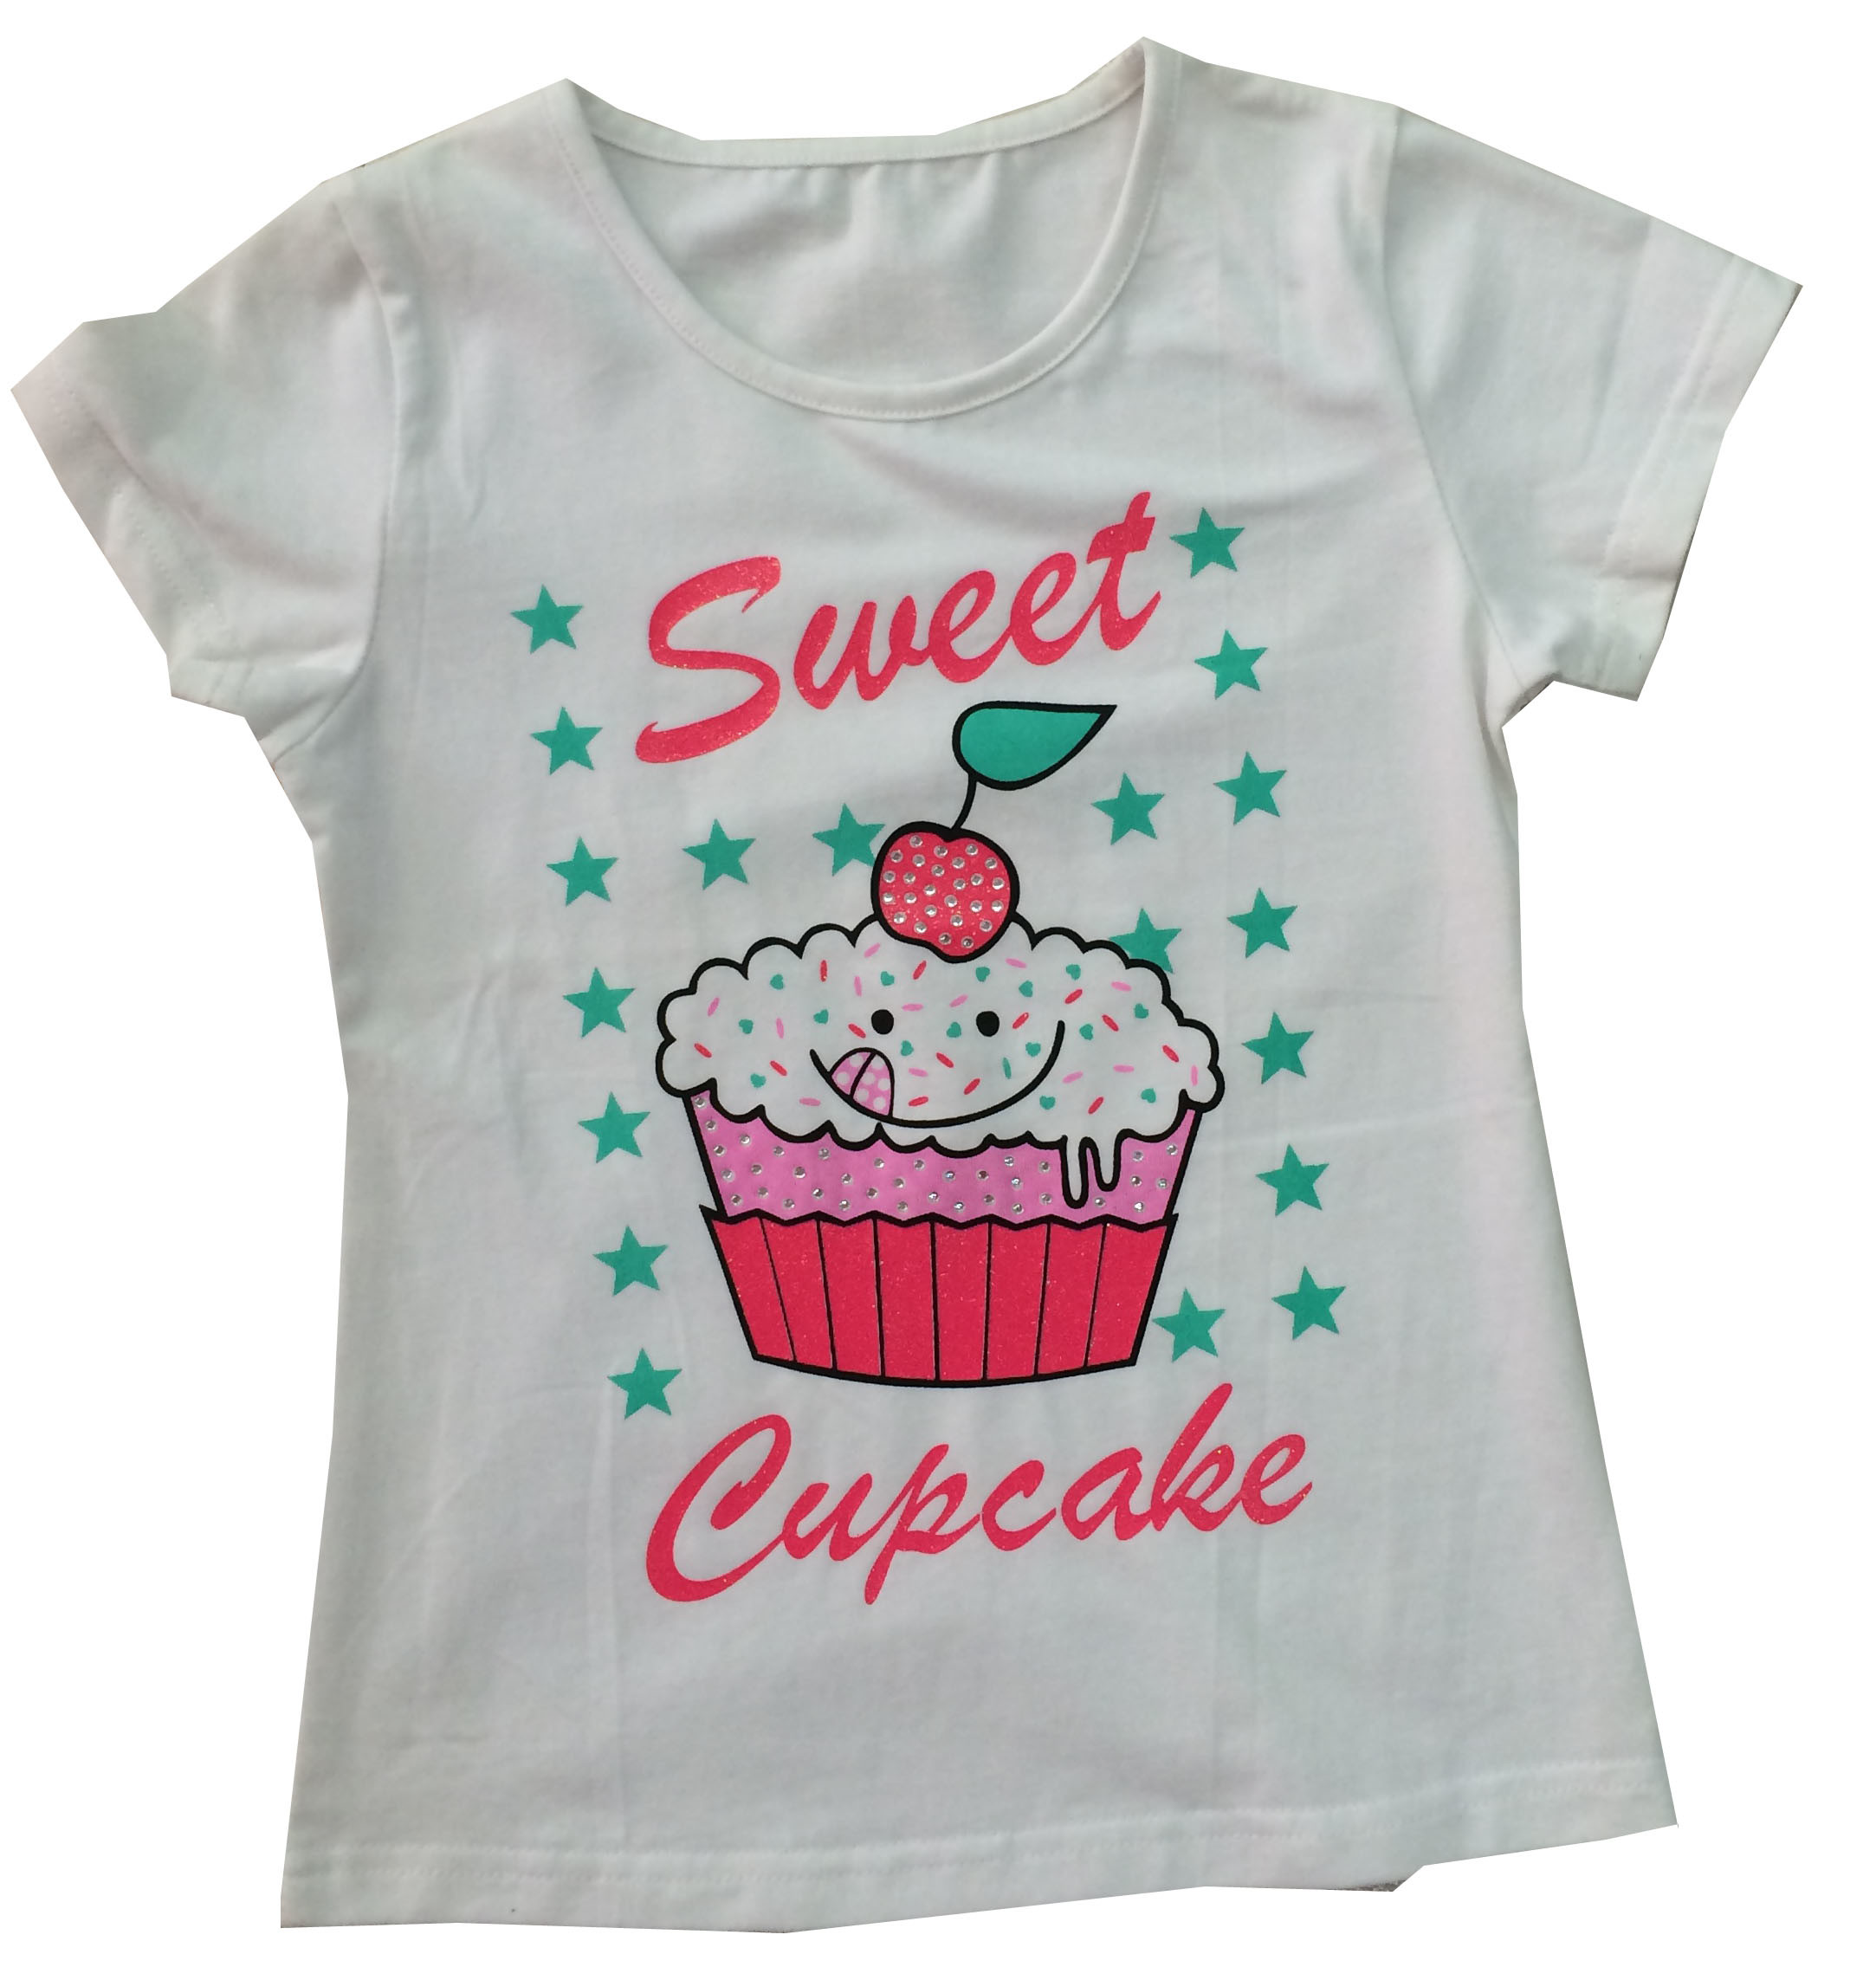 Design t shirt girl - Wholesale Girl Kids Children Models Cotton Round Neck Printing T Shirt Design Sgt 029